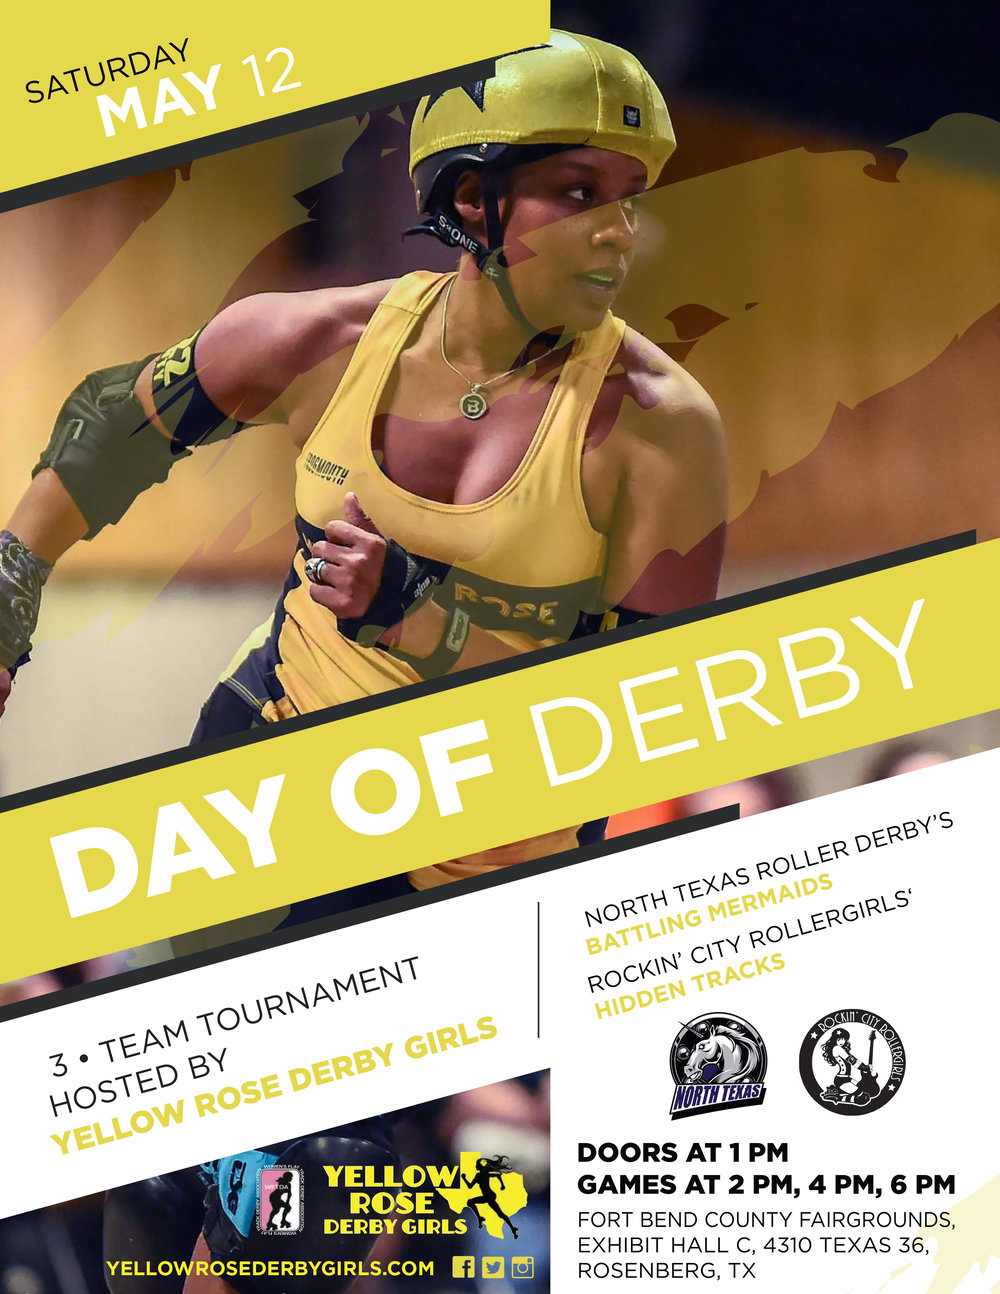 Day of Derby Flyer